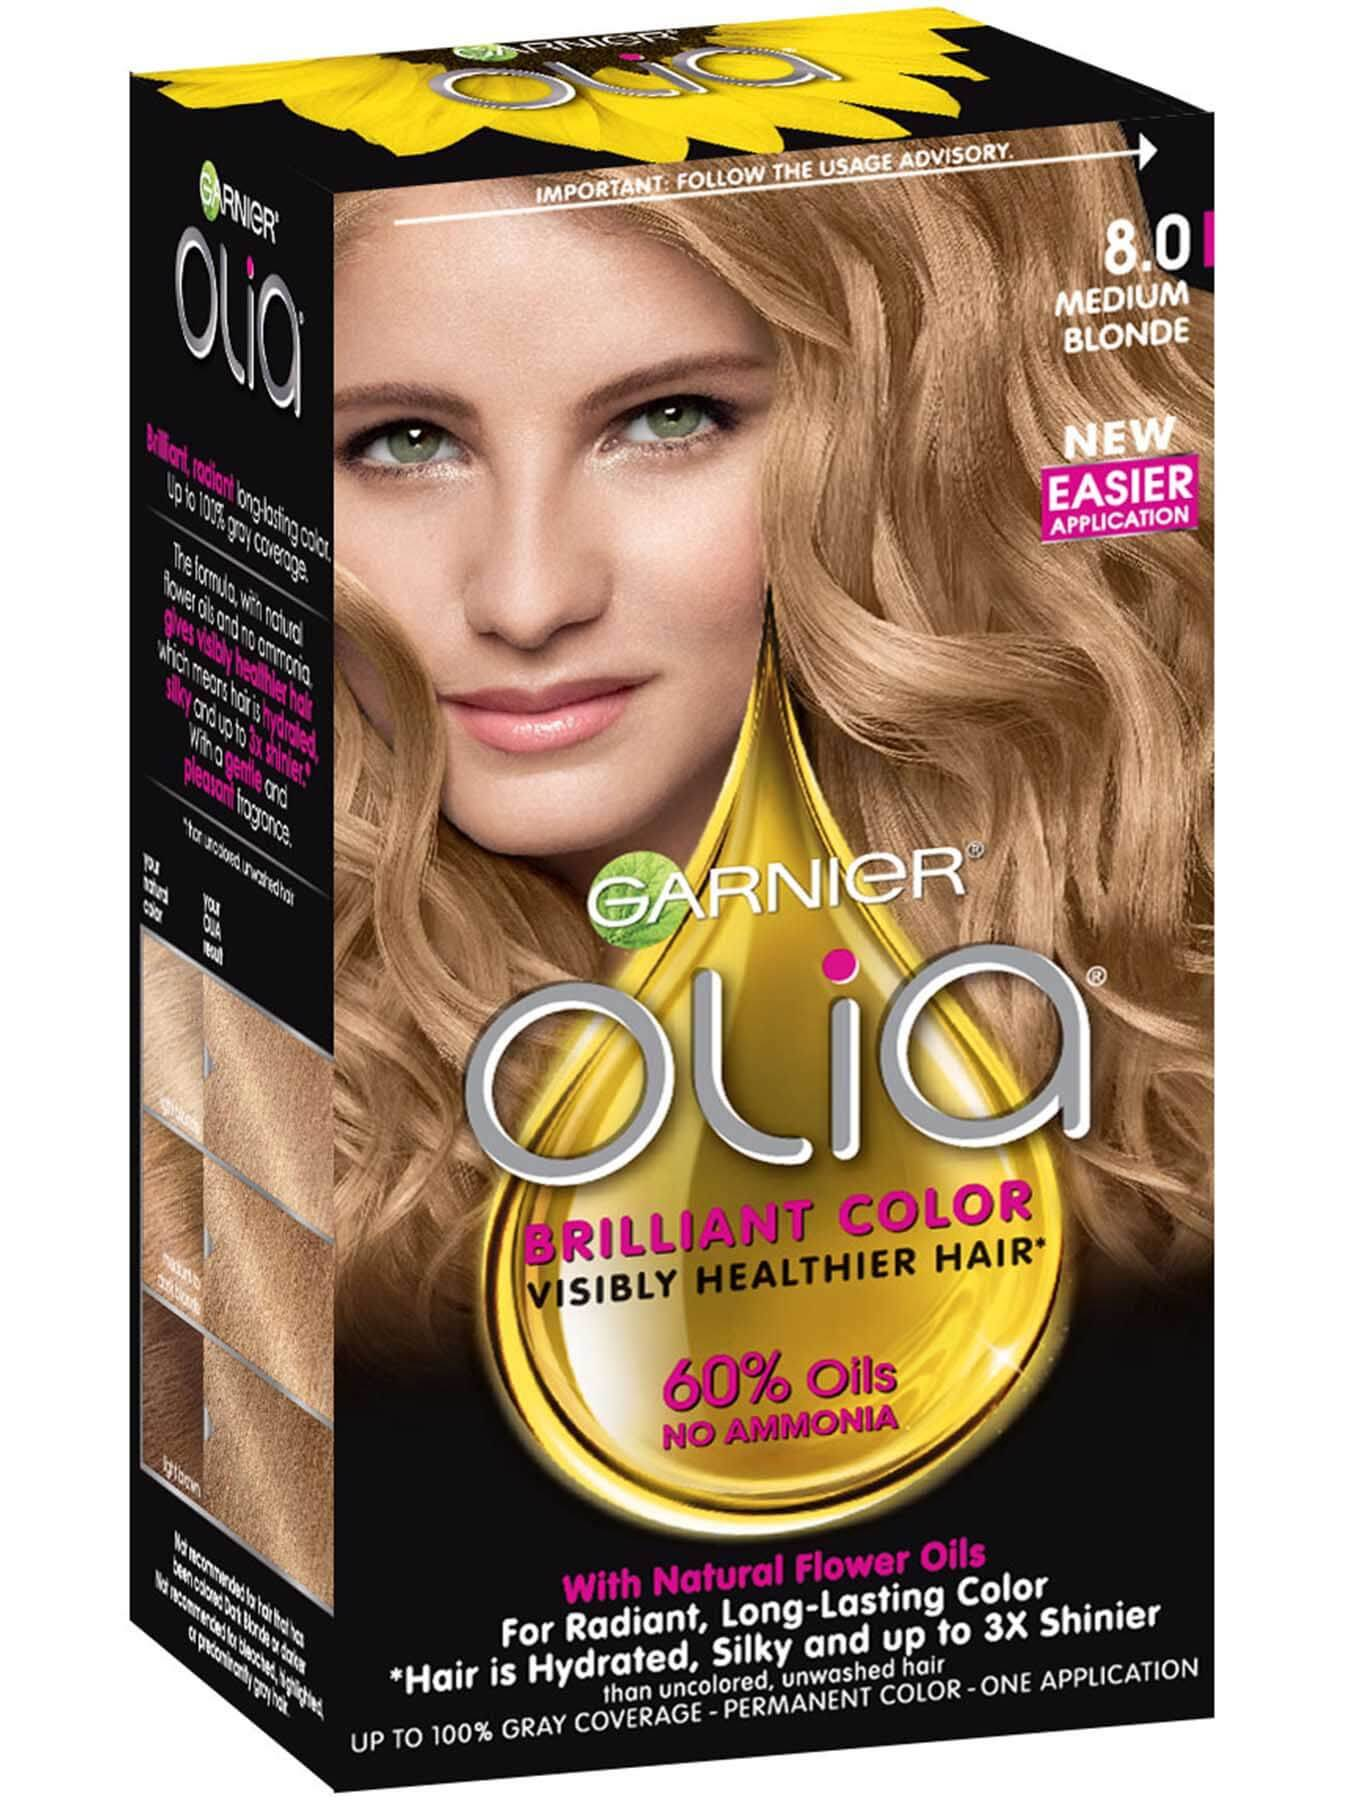 Olia Ammonia Free Permanent Hair Color Medium Blonde Garnier